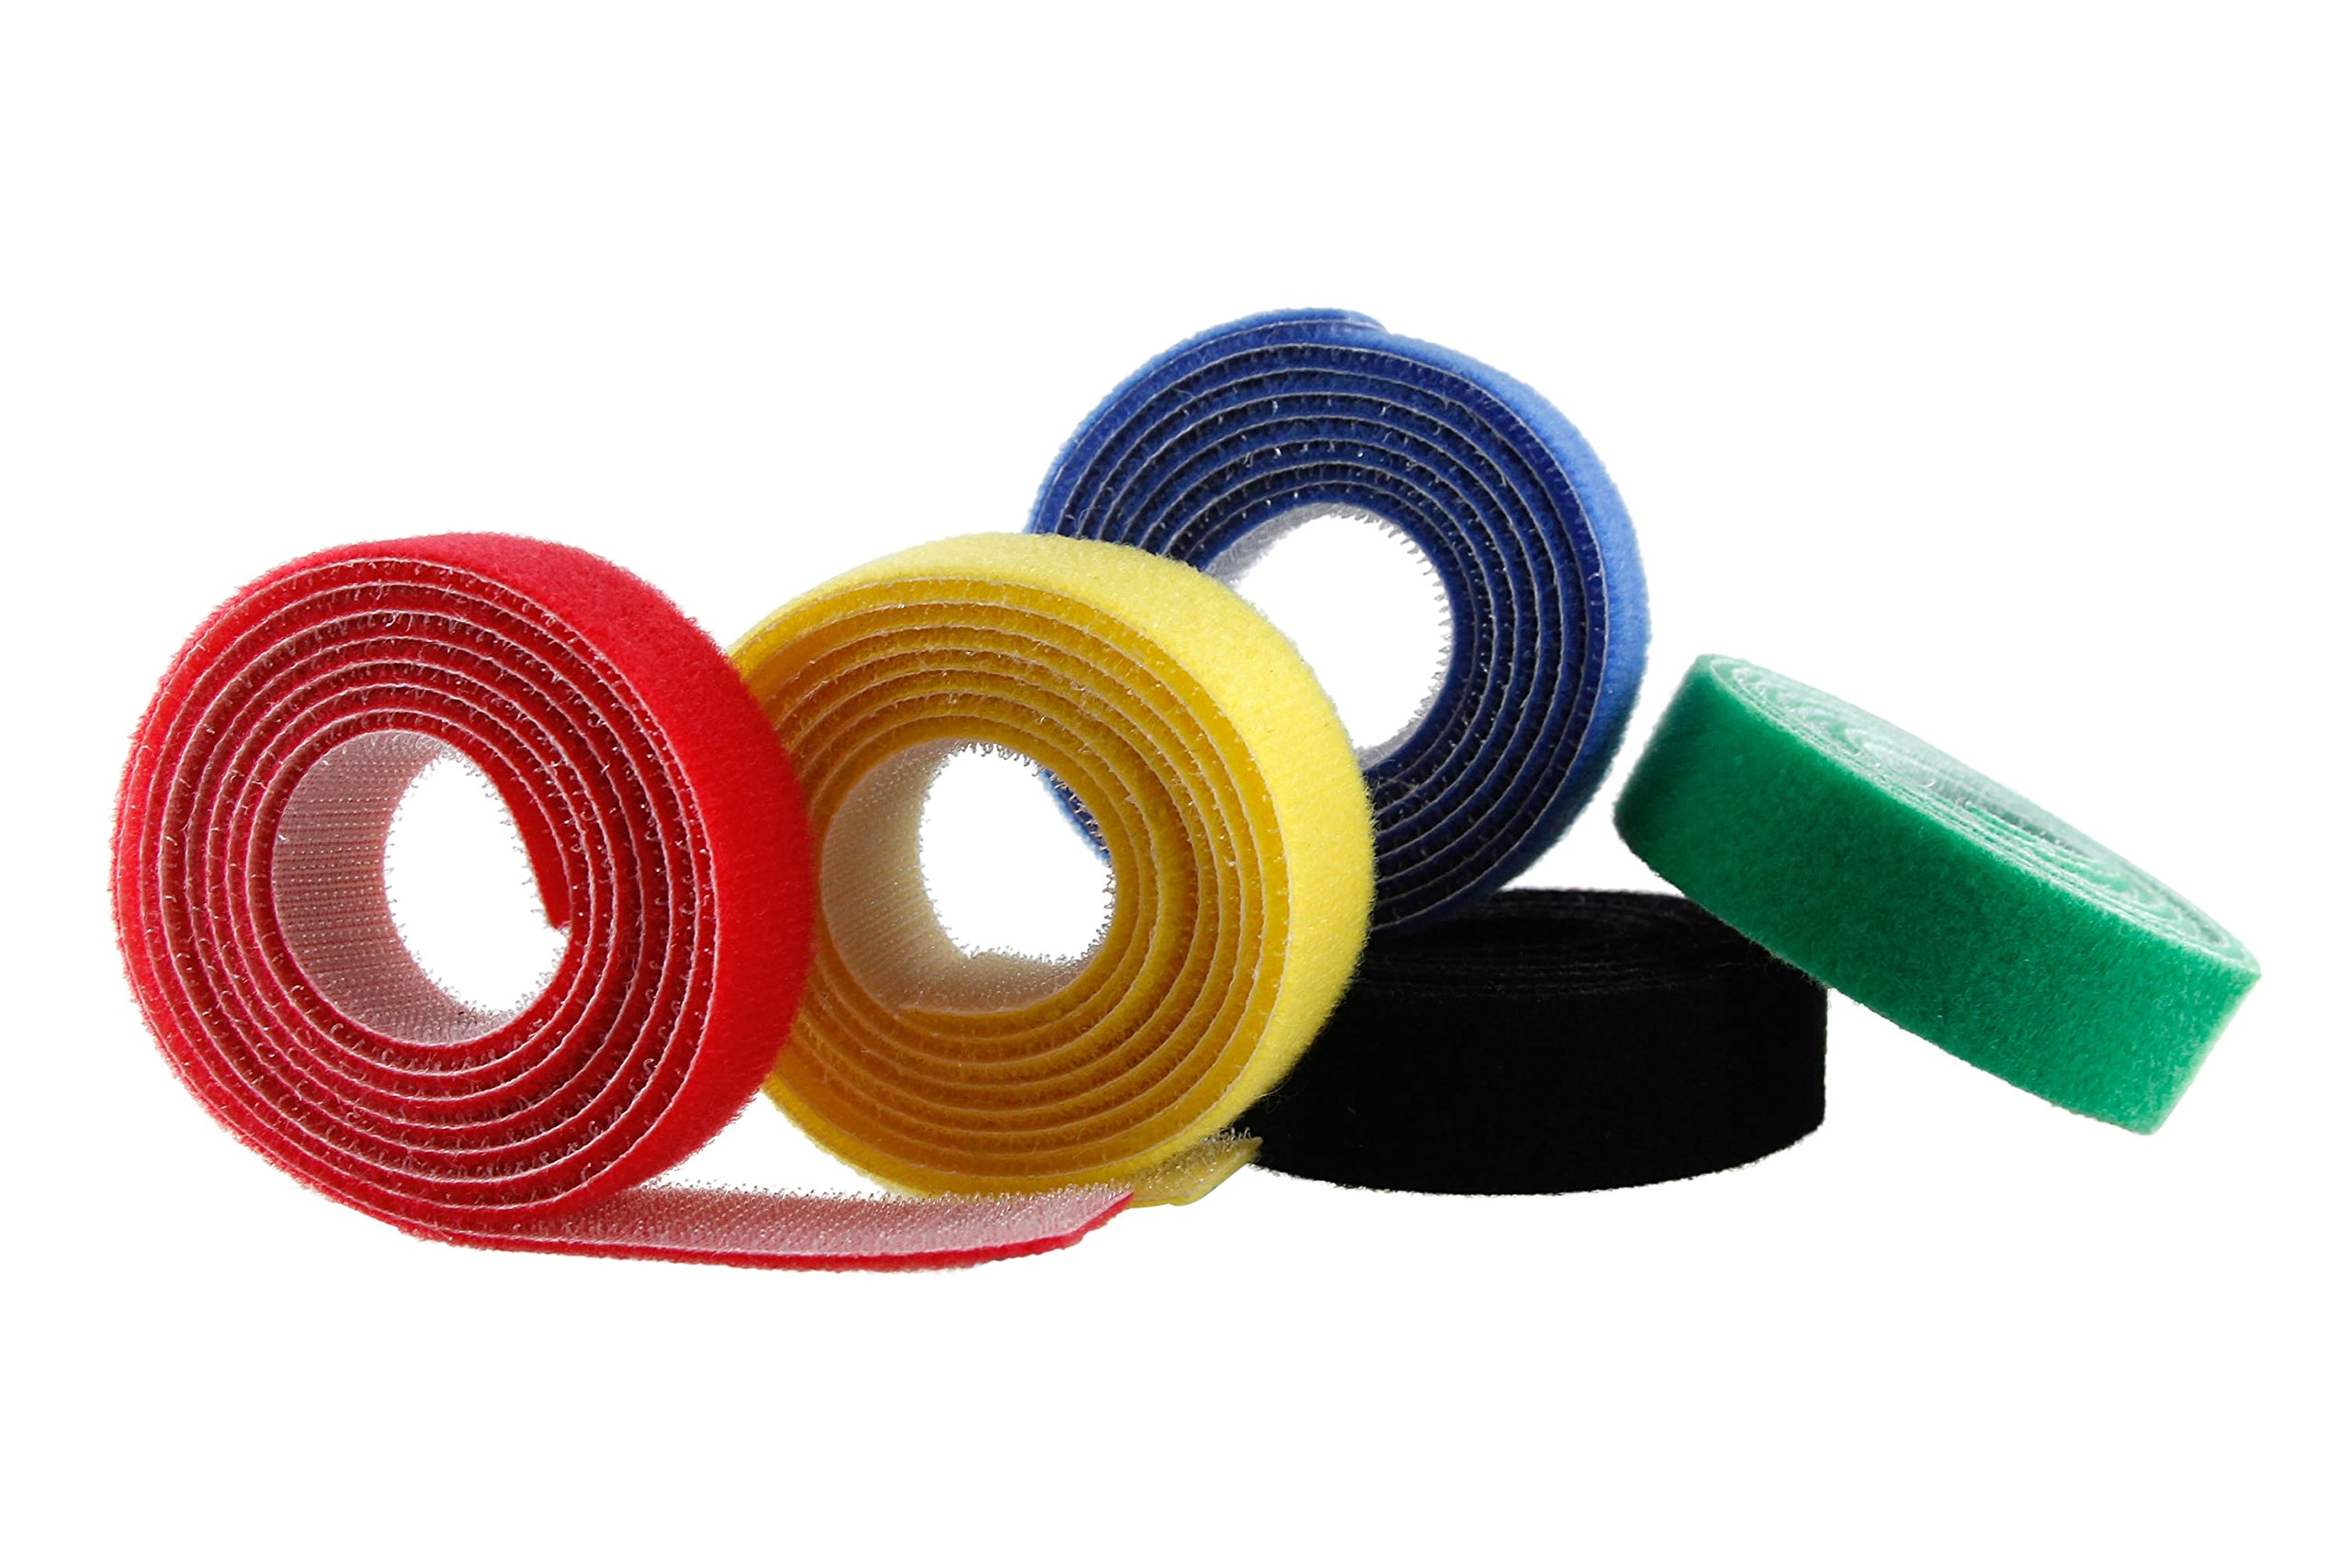 Baumgartens Nylon Cord Roll 5 Pack Assorted Colors (Pack of 5) (48005)